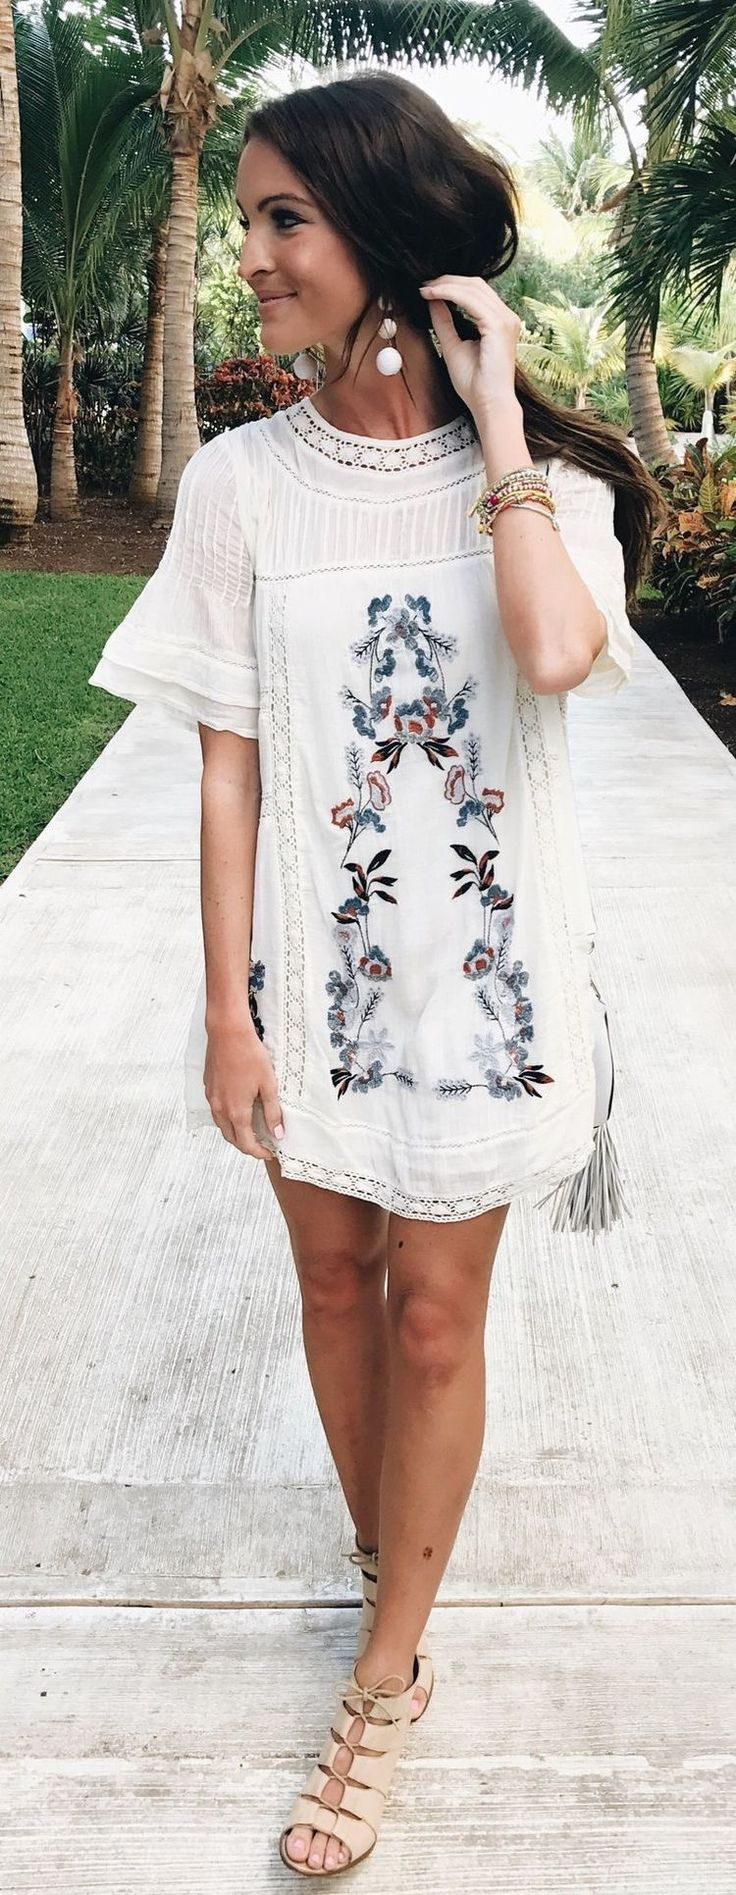 Find More at => http://feedproxy.google.com/~r/amazingoutfits/~3/rWu21FklMXE/AmazingOutfits.page